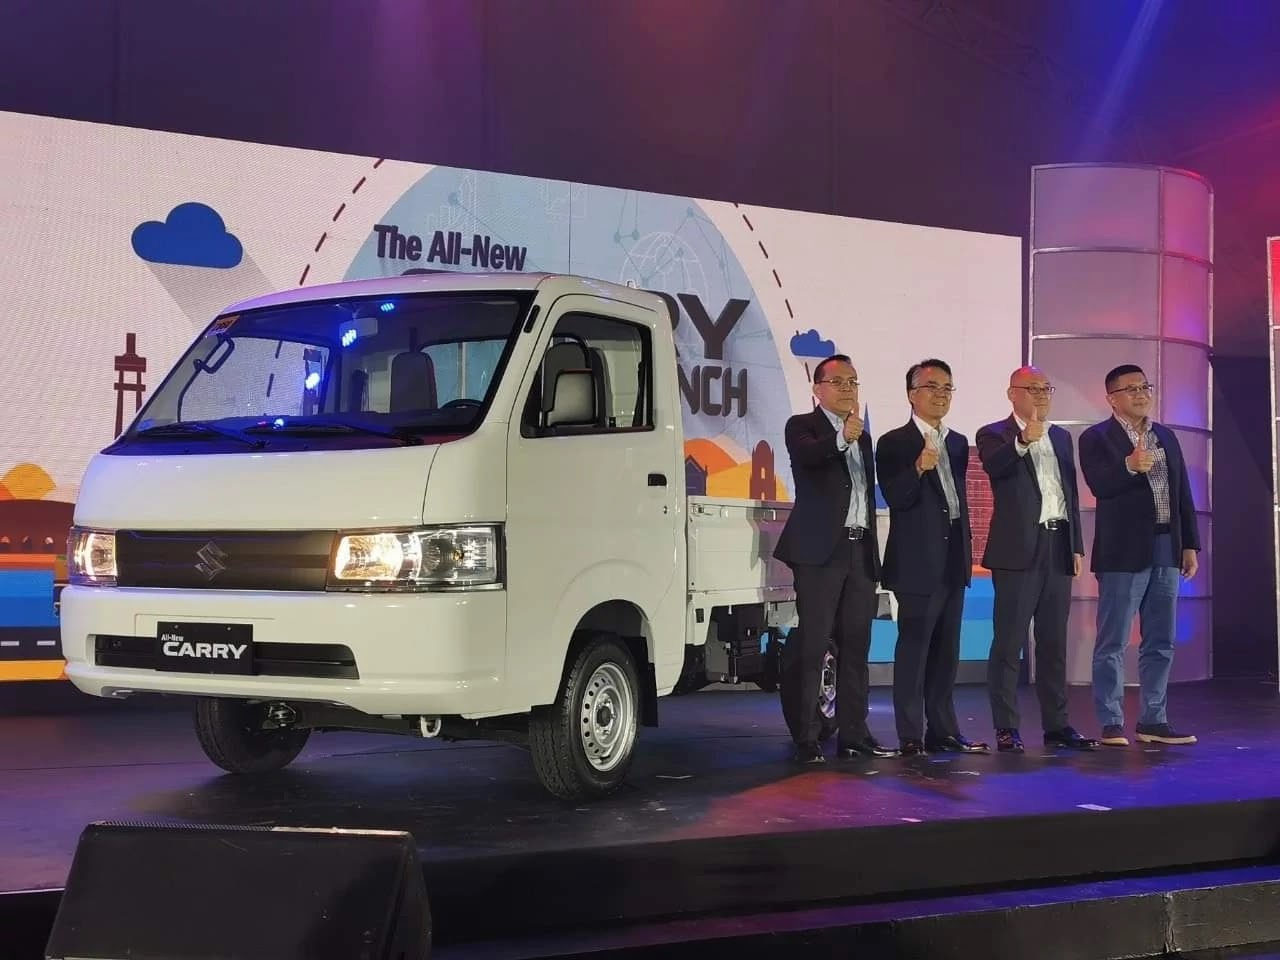 All-New 2019 Suzuki Carry